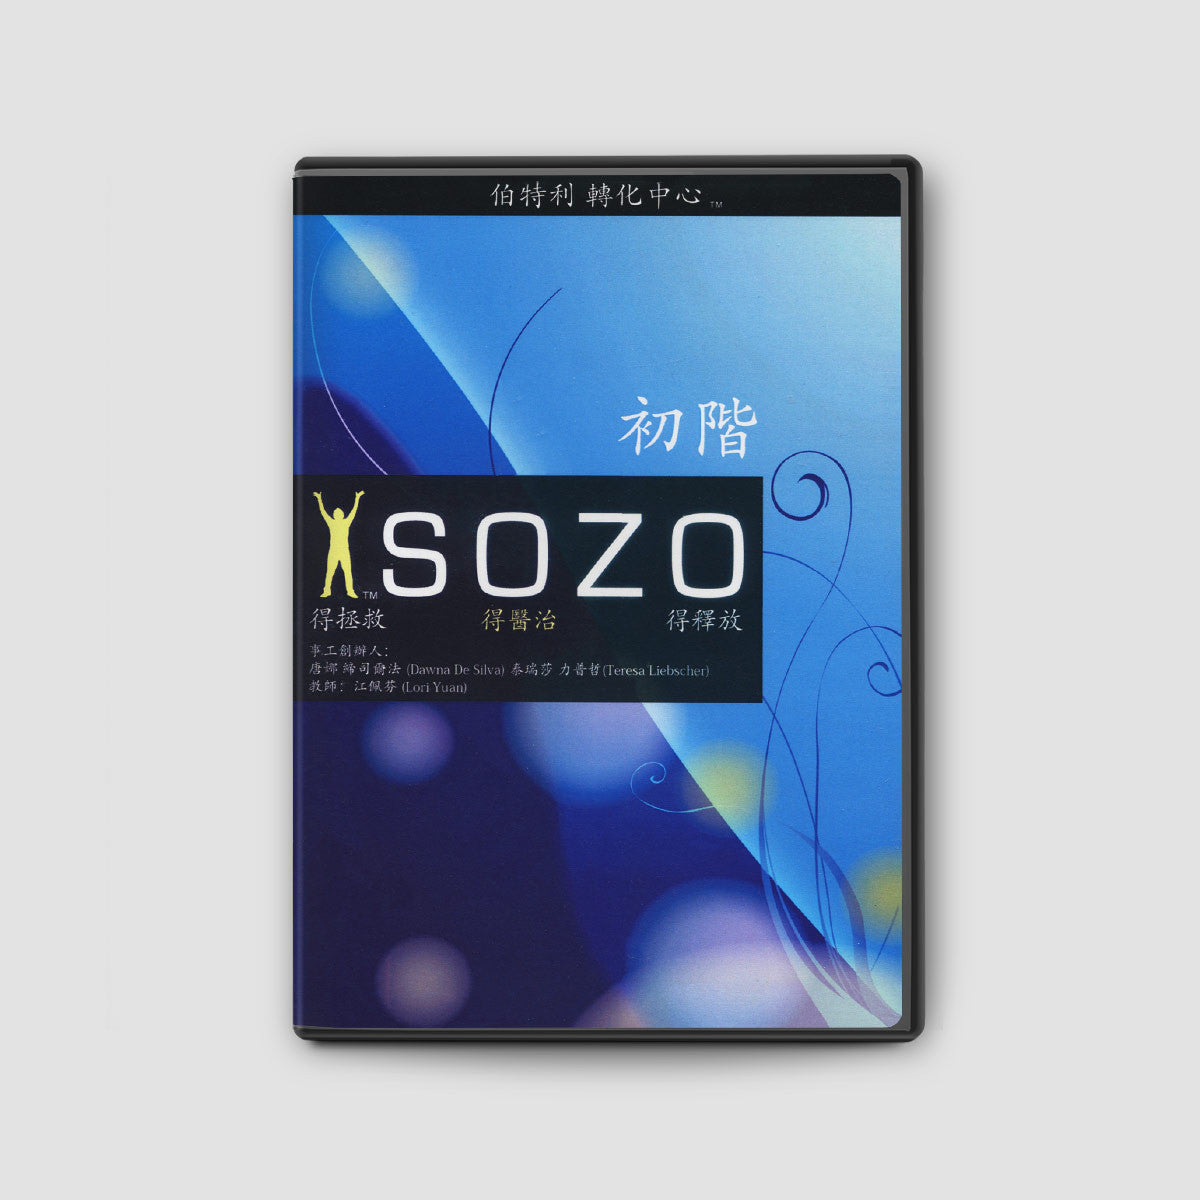 Sozo Basic Training Manual - Chinese